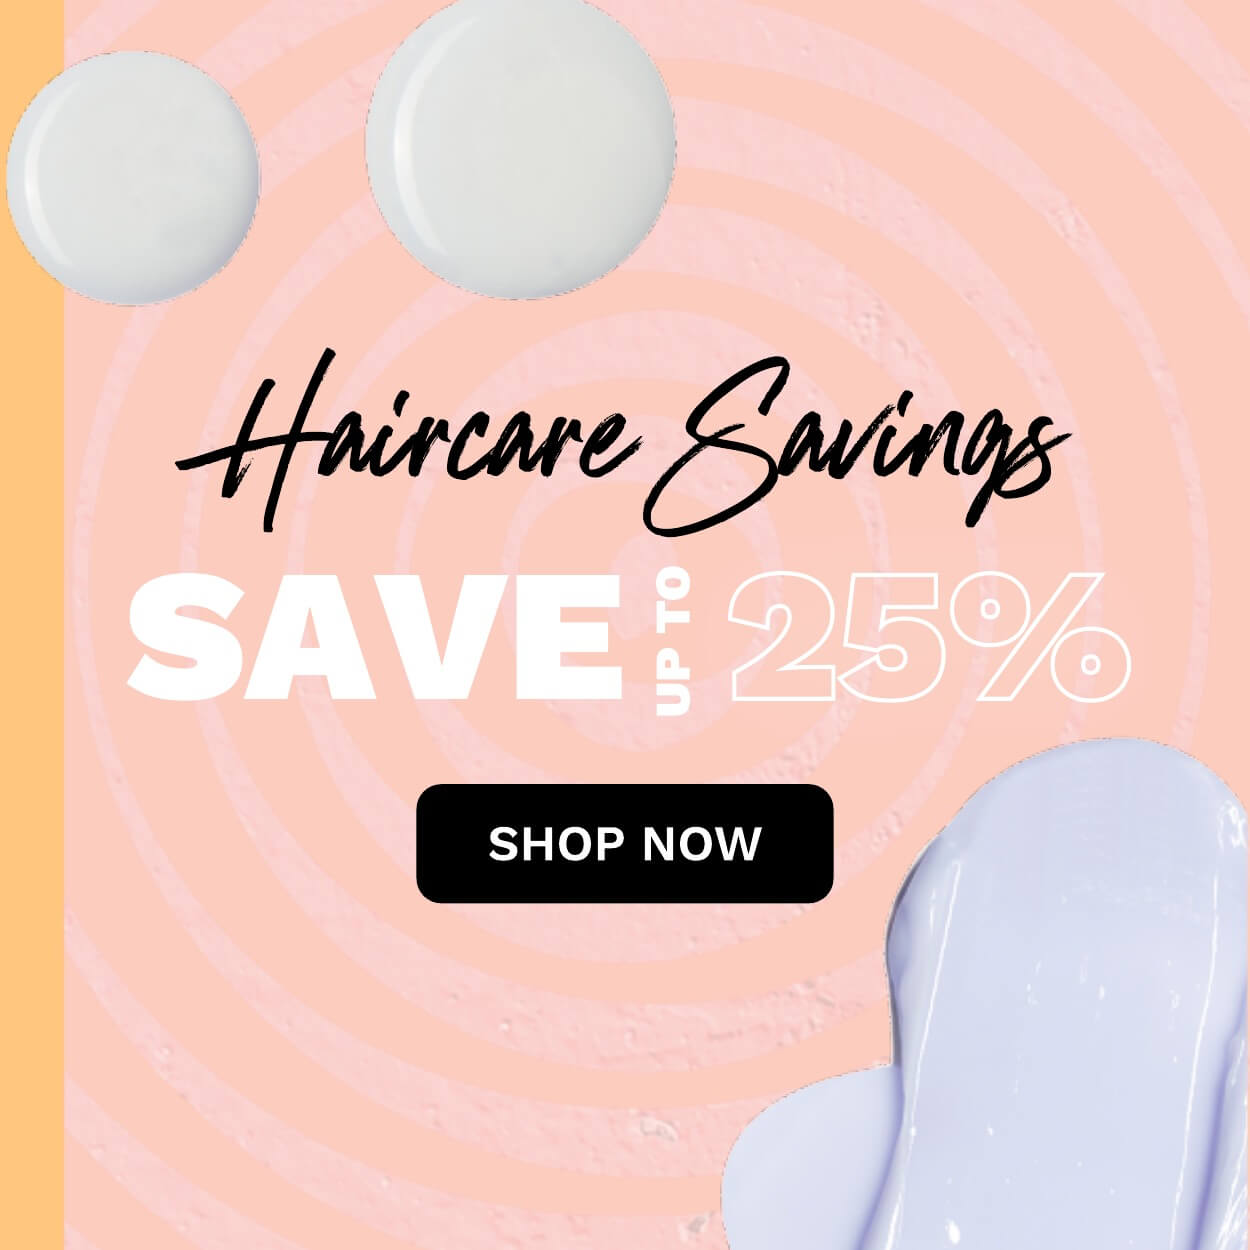 Save up to 25% off haircare!